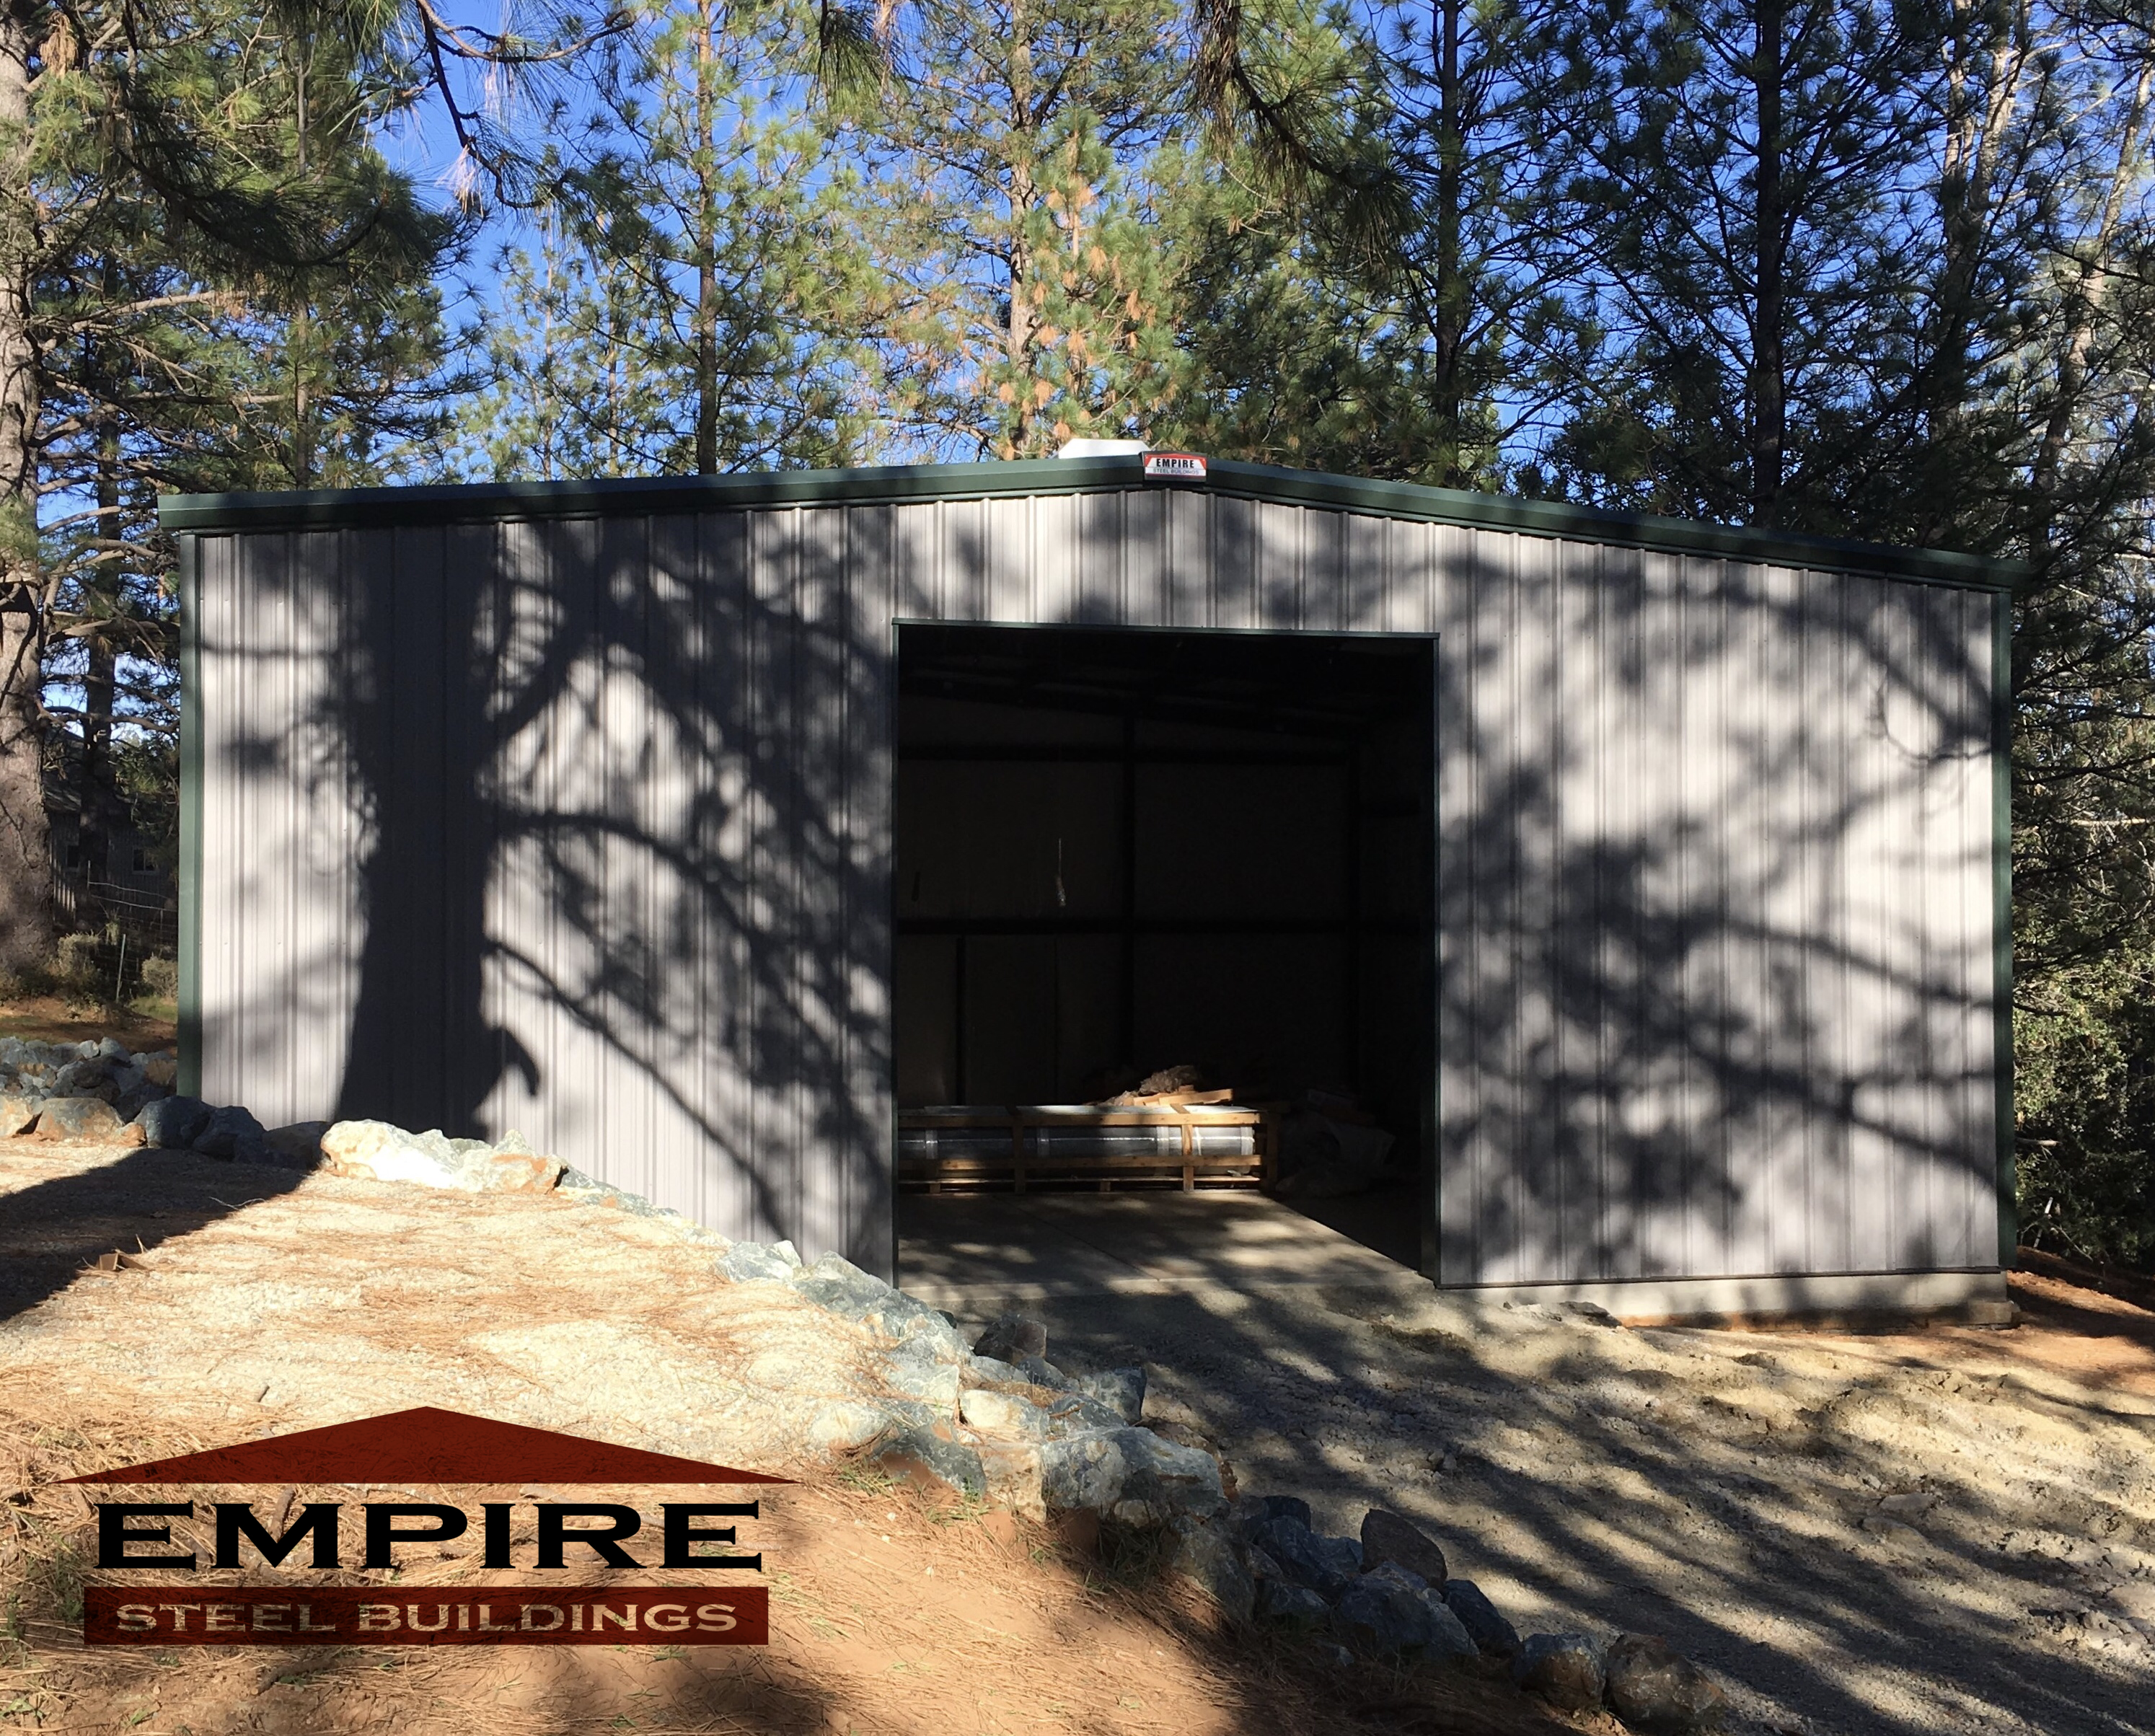 30 X 30 Steel Building In California Provided By Empire Steel Buildings Steel Buildings Outdoor Building